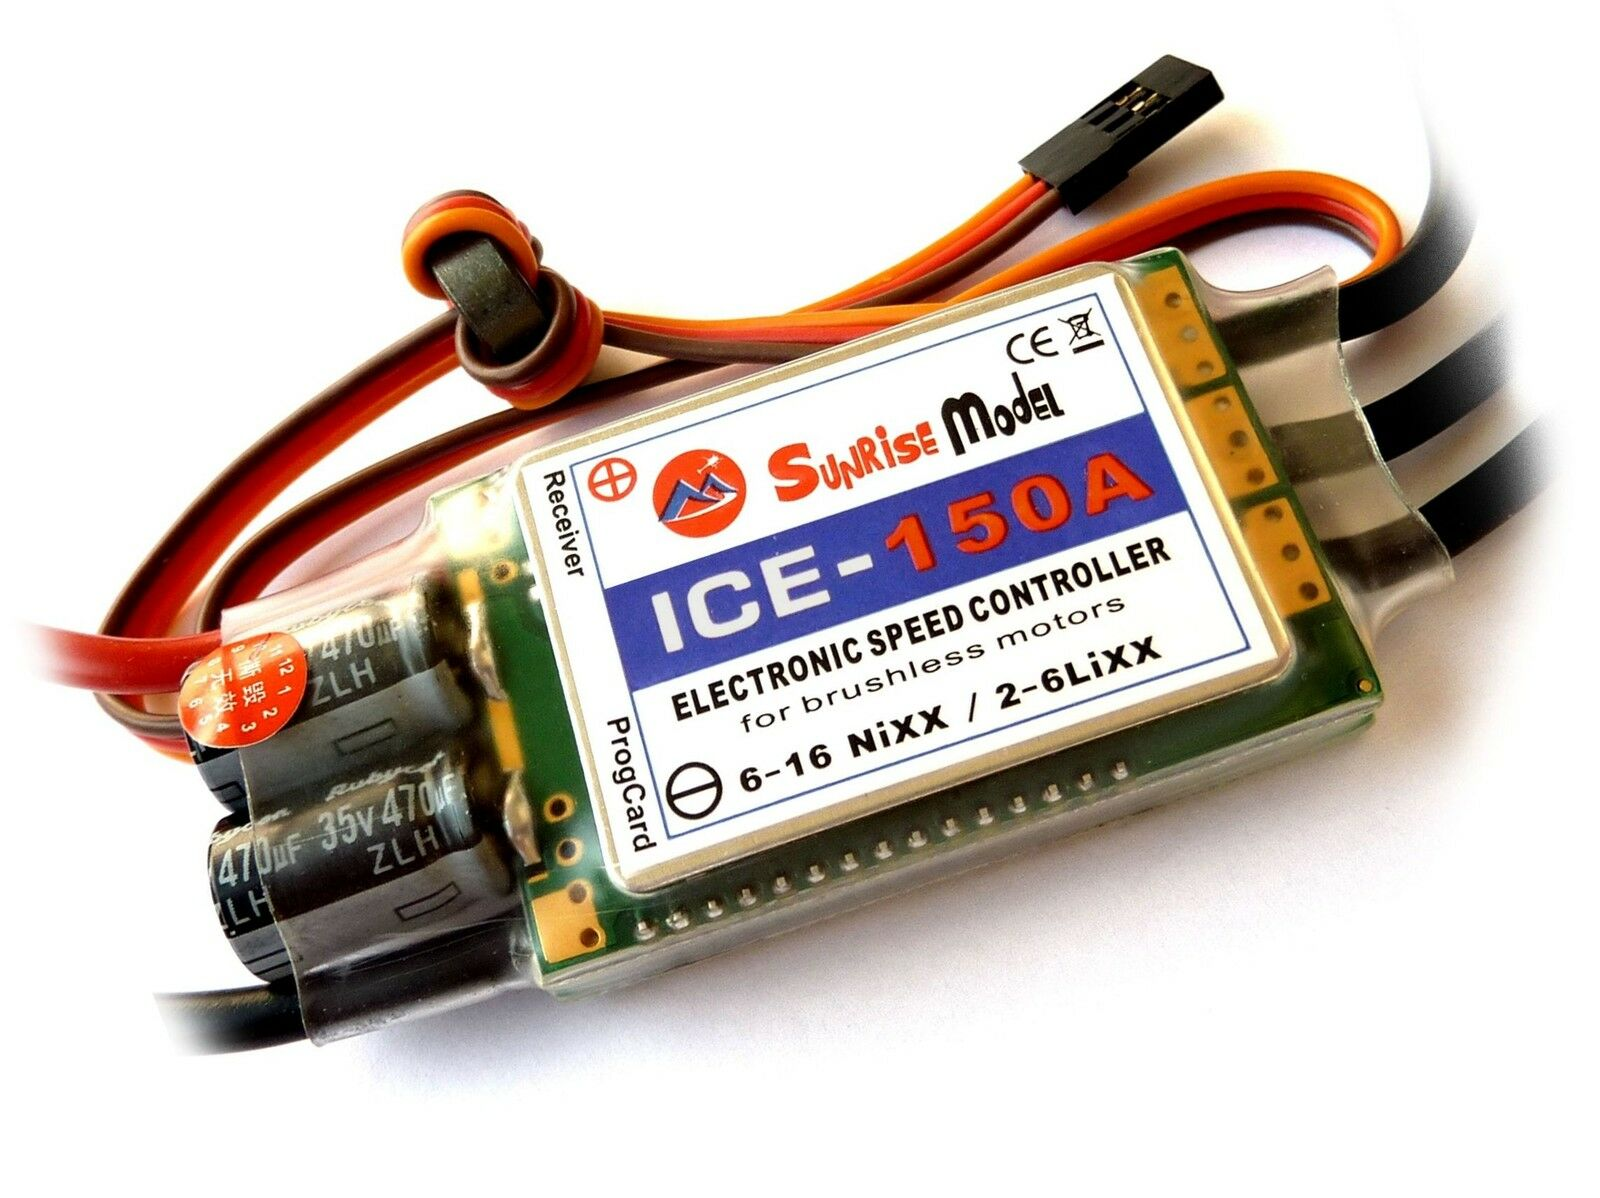 150a ice-Sunrise vuelo-Helicopter regulador 2-6 lipo programables los geniales